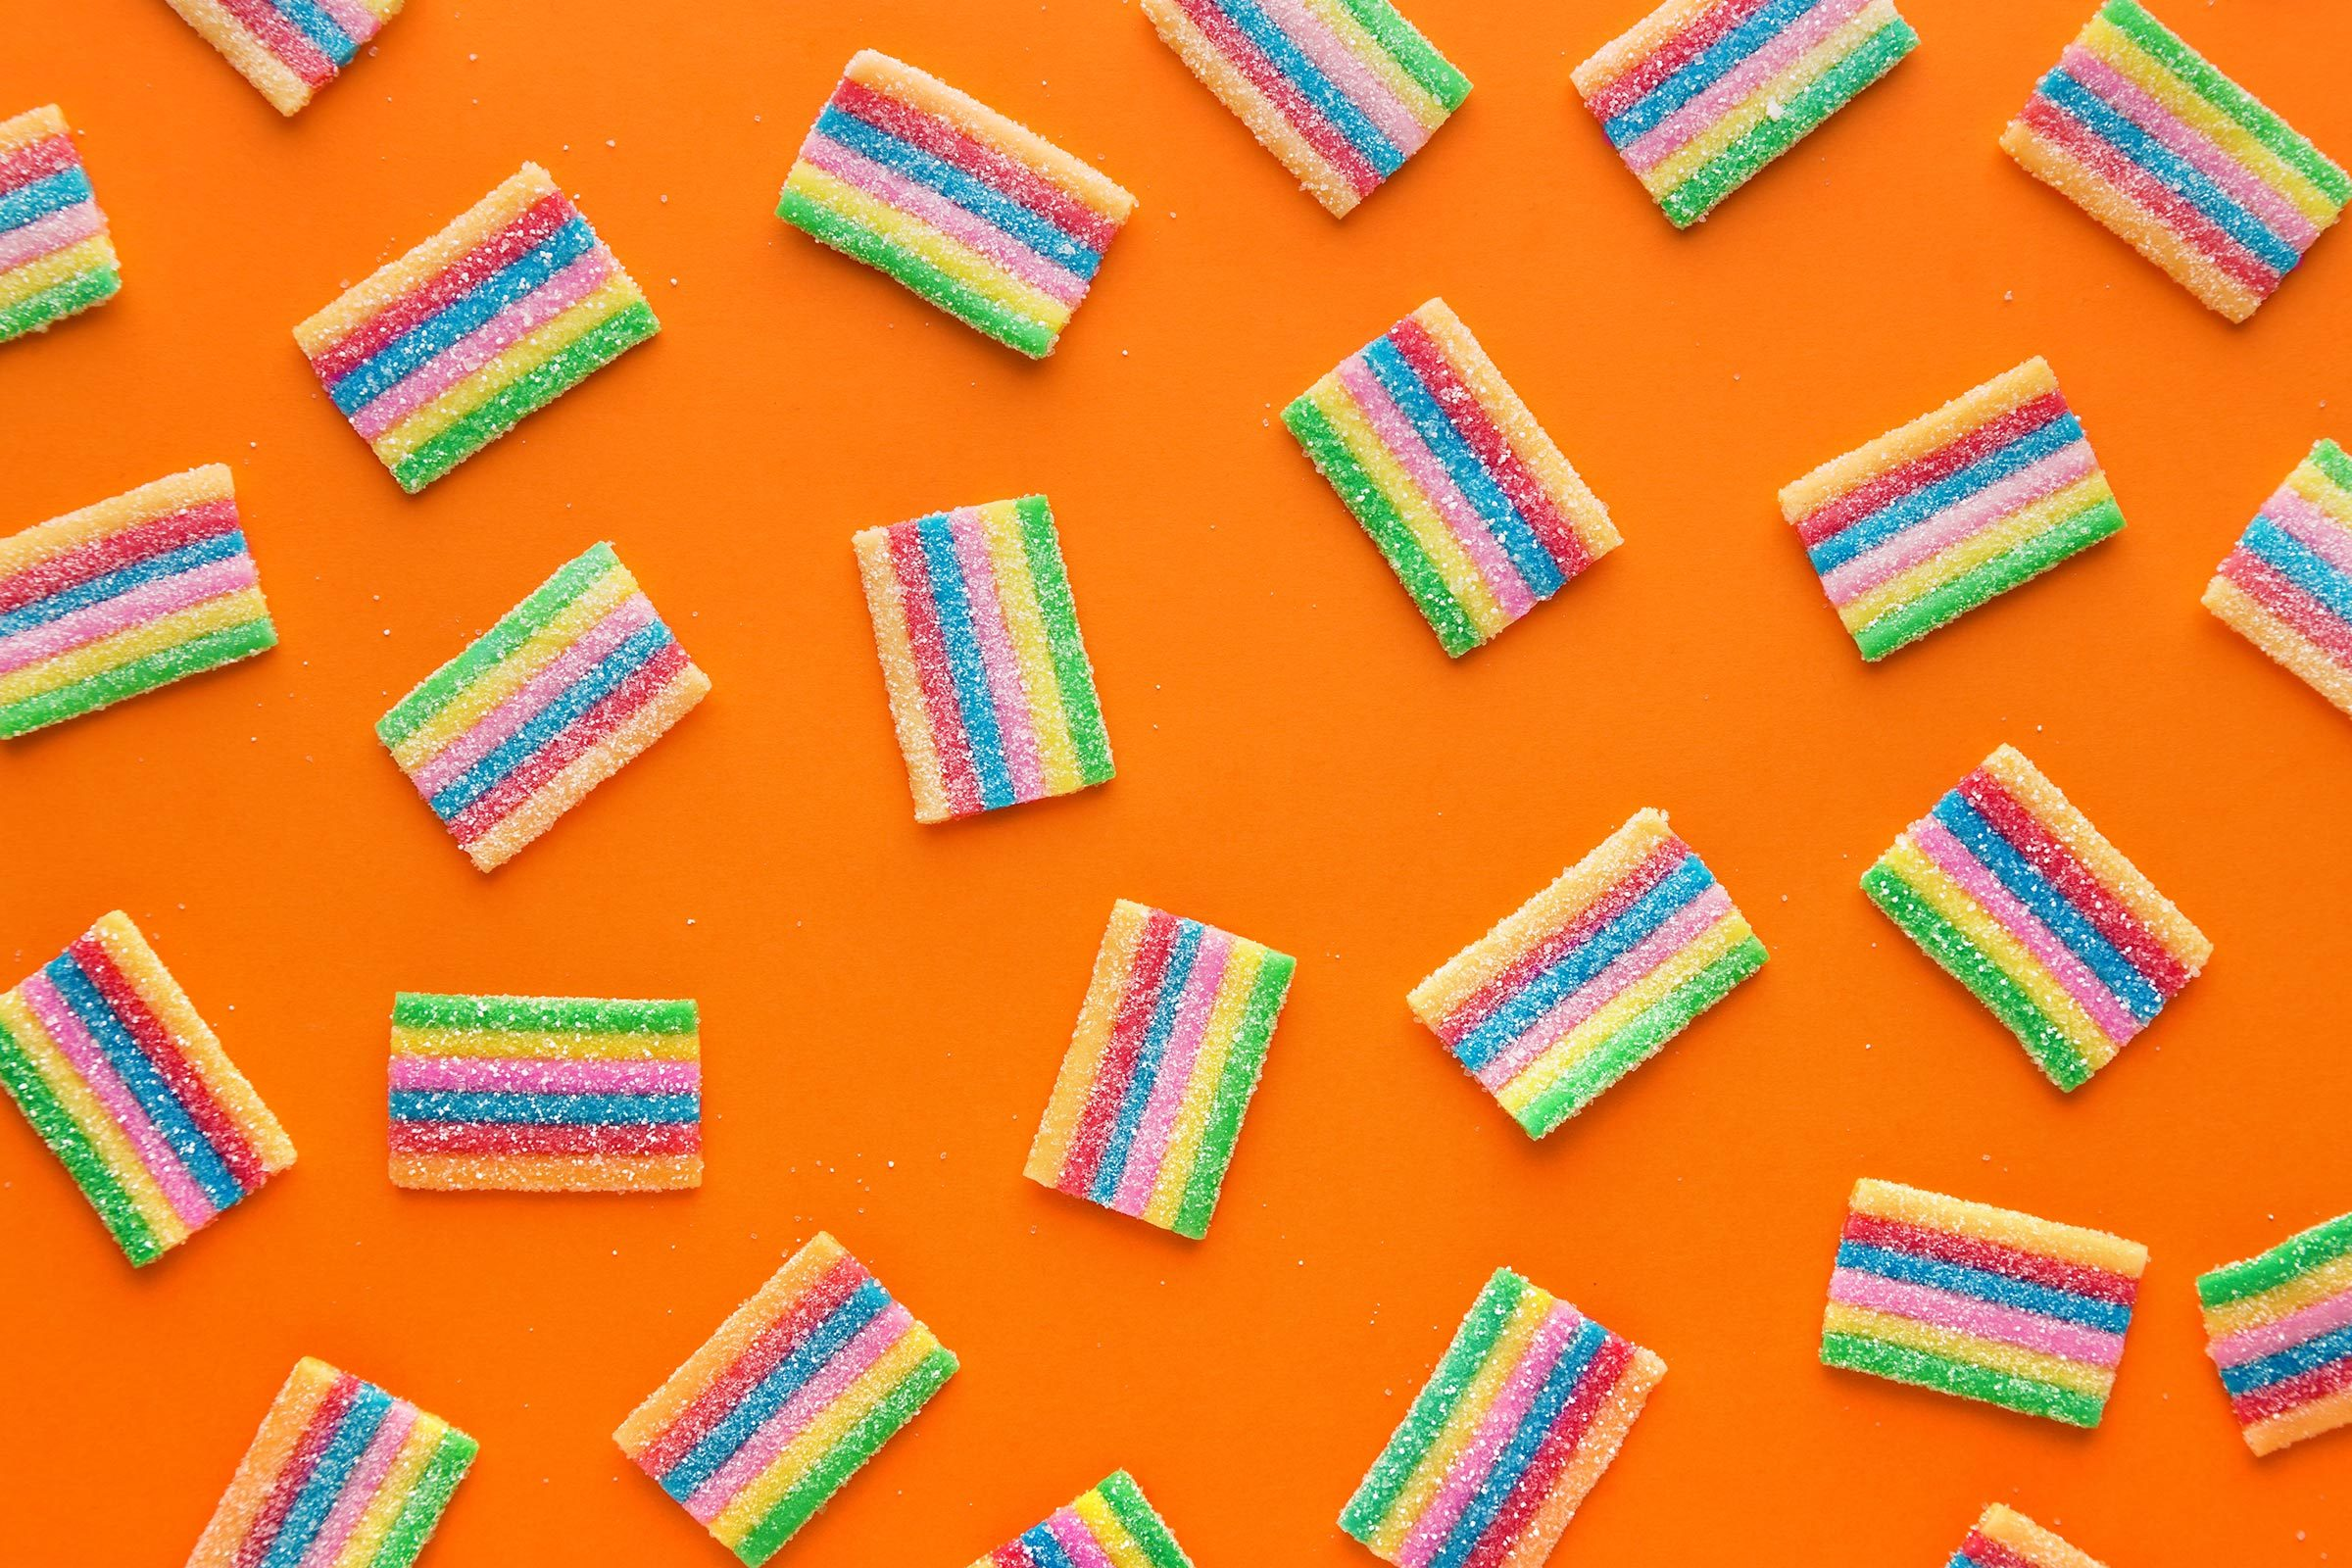 gummy sour candy pattern orange background